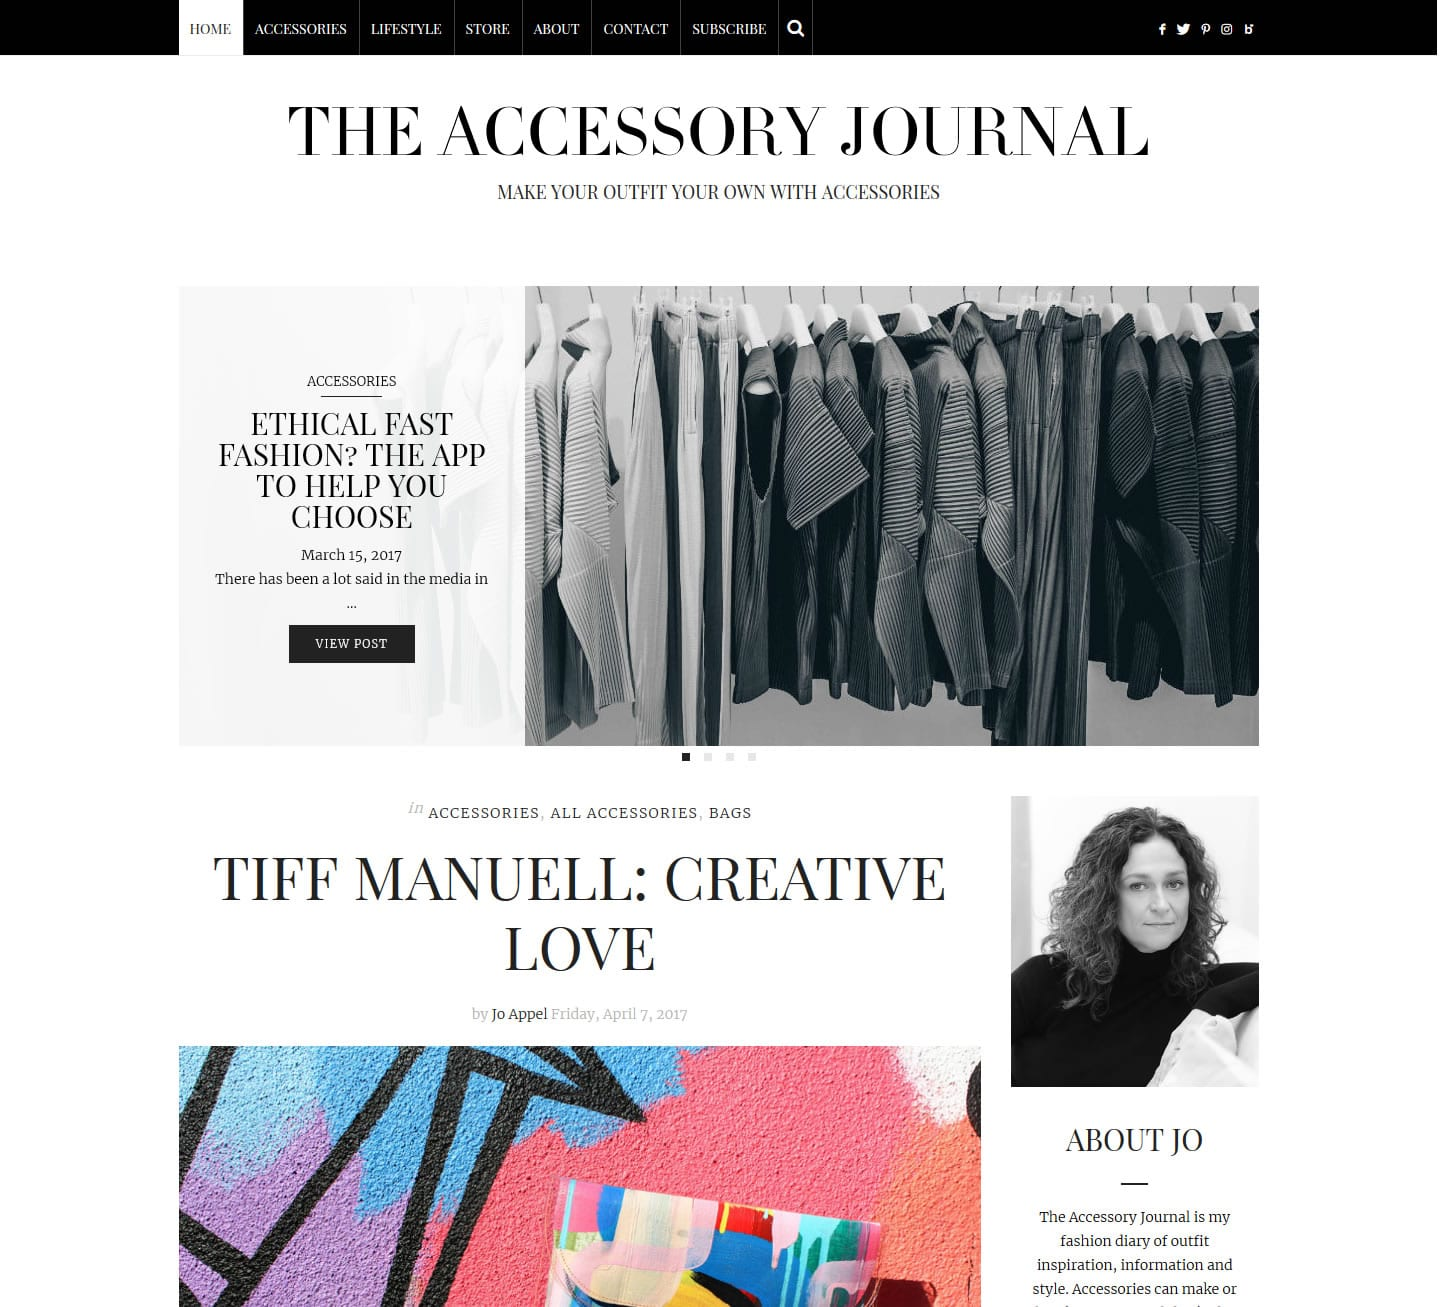 The Accessory Journal WordPress blog